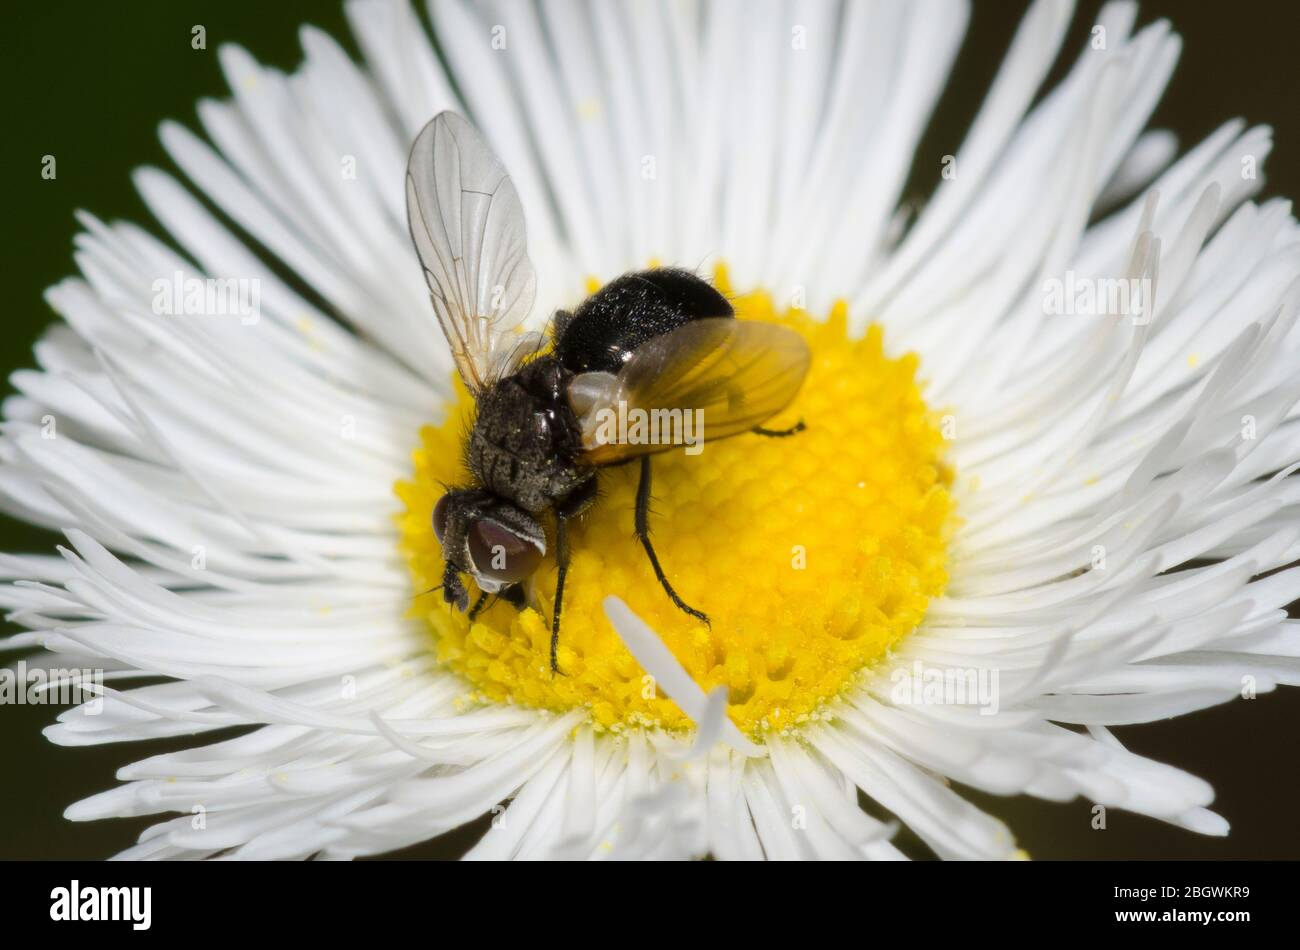 Tachinid Fly, Besseria atra, foraging on Fleabane, Erigeron sp. Stock Photo